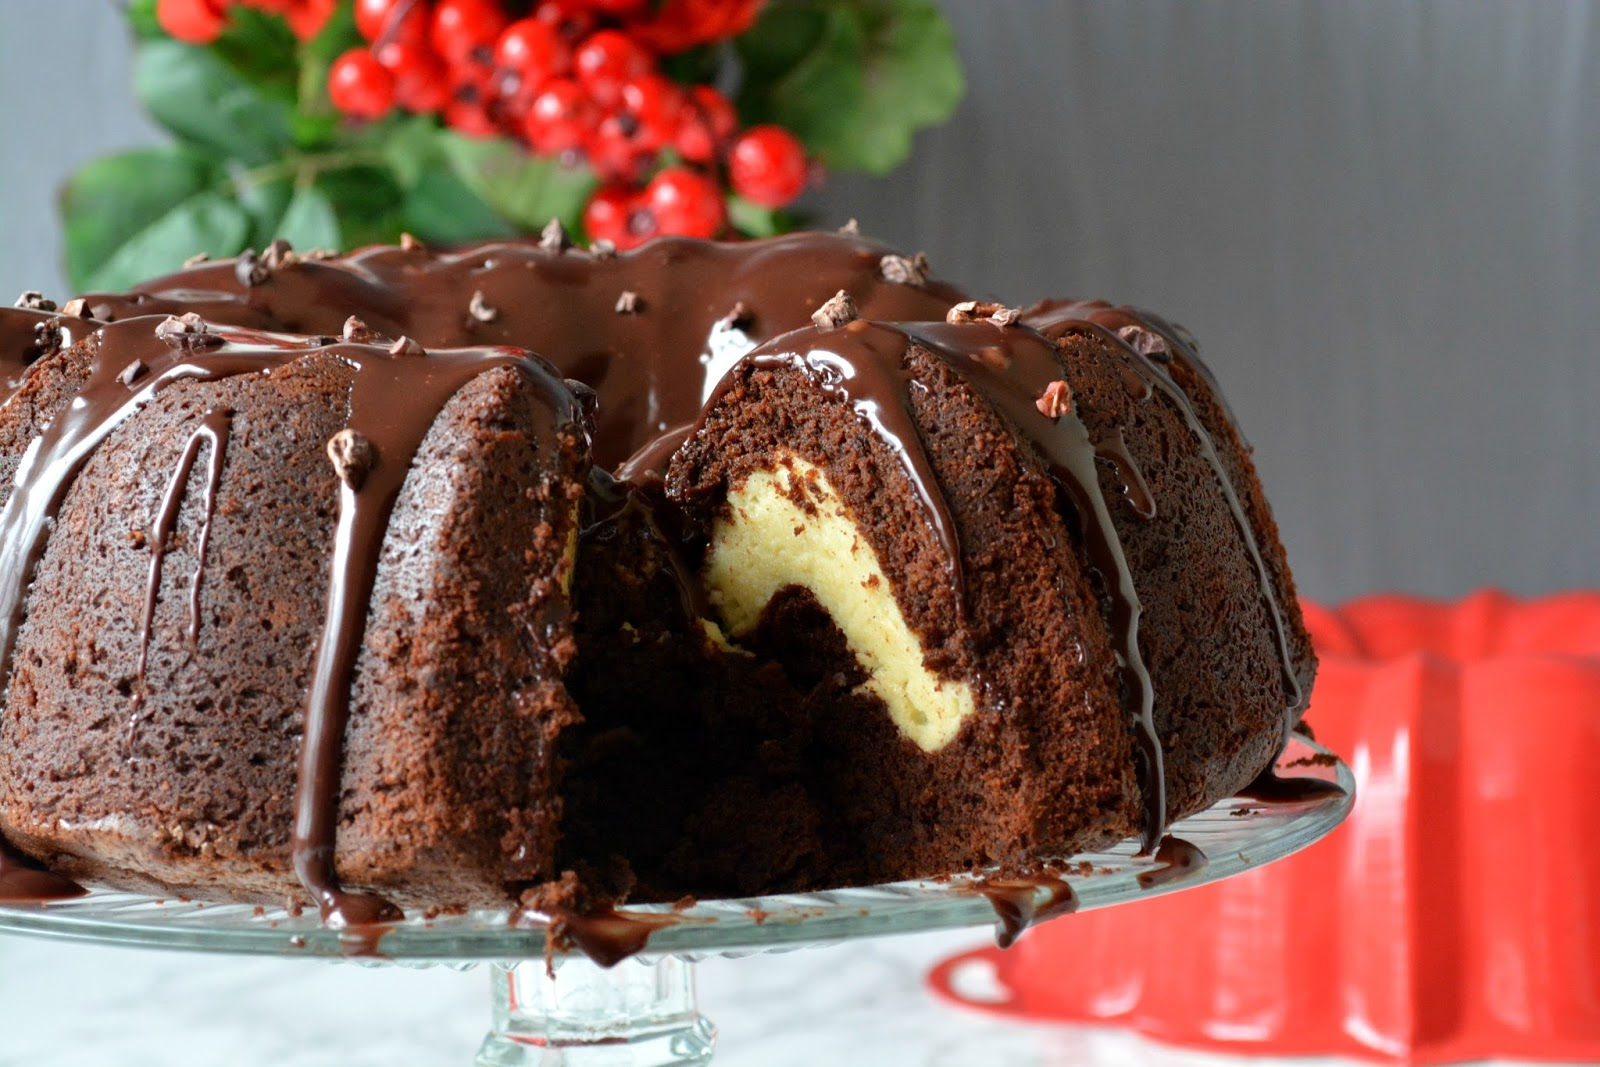 Love is in my tummy: Cheesecake filled Chocolate cake